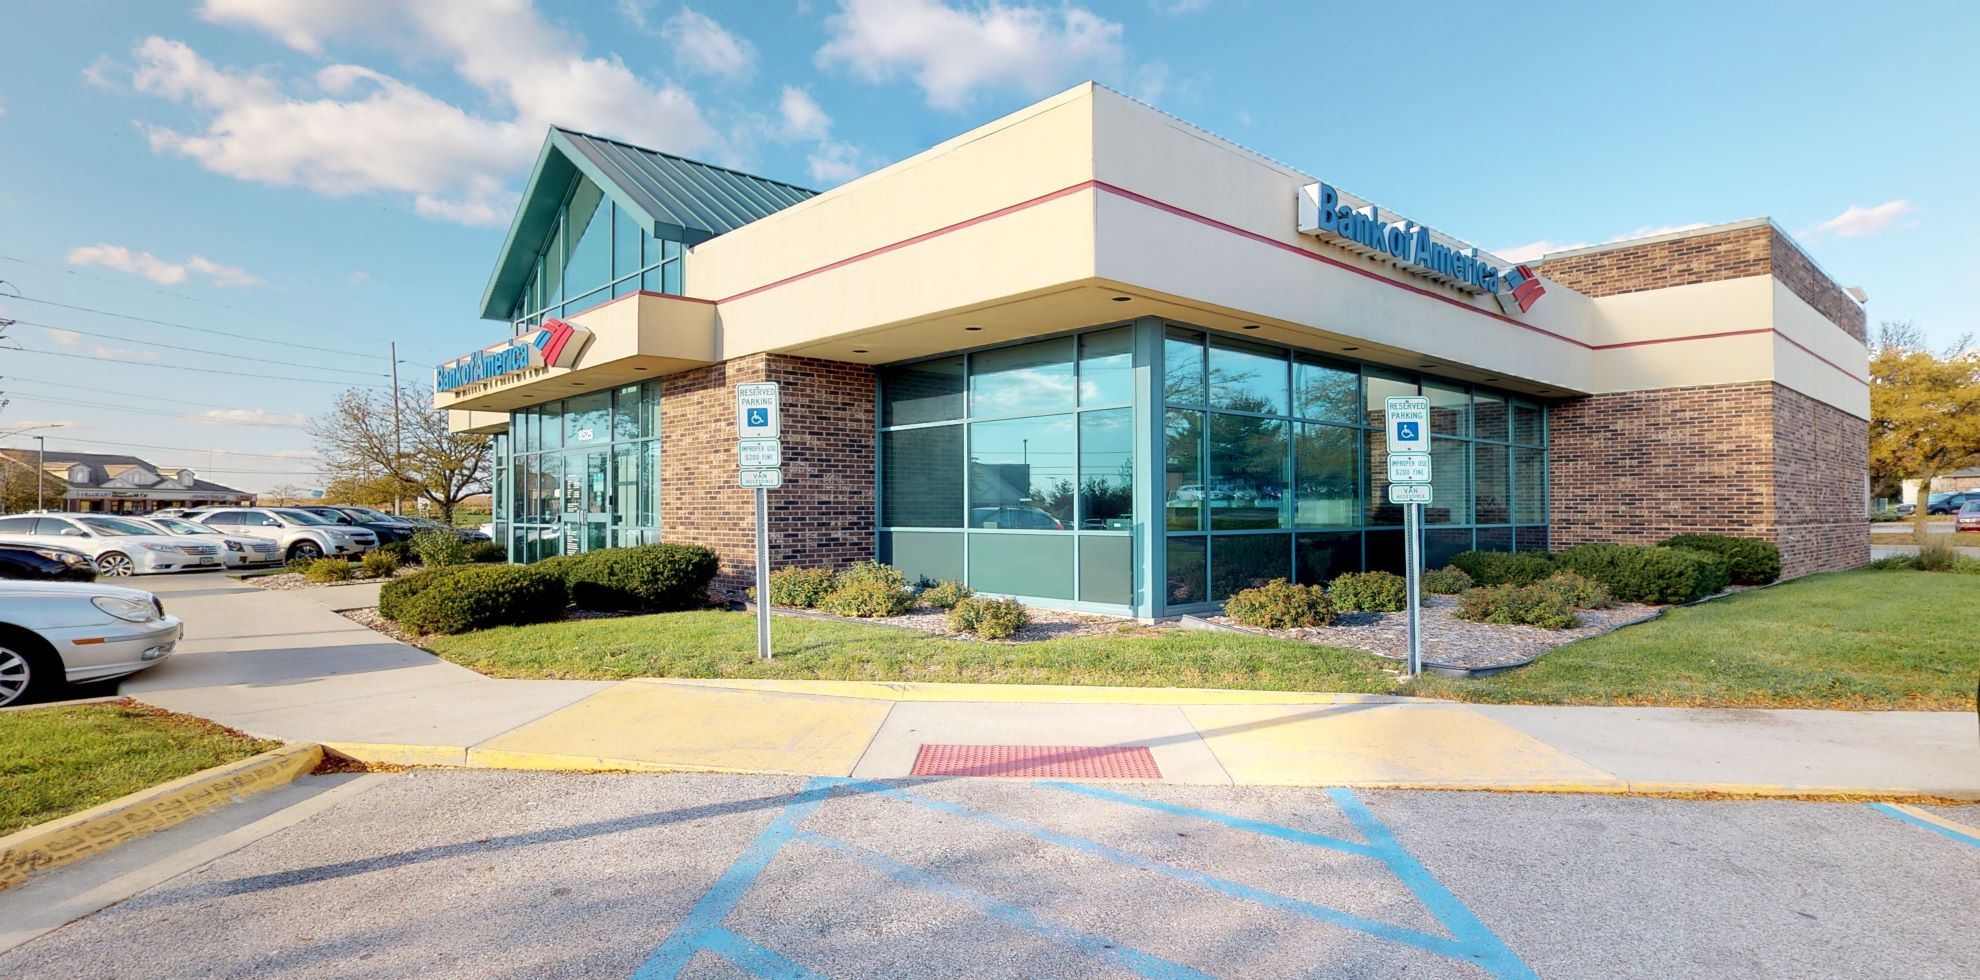 Bank of America financial center with drive-thru ATM | 8525 Meredith Dr, Urbandale, IA 50322